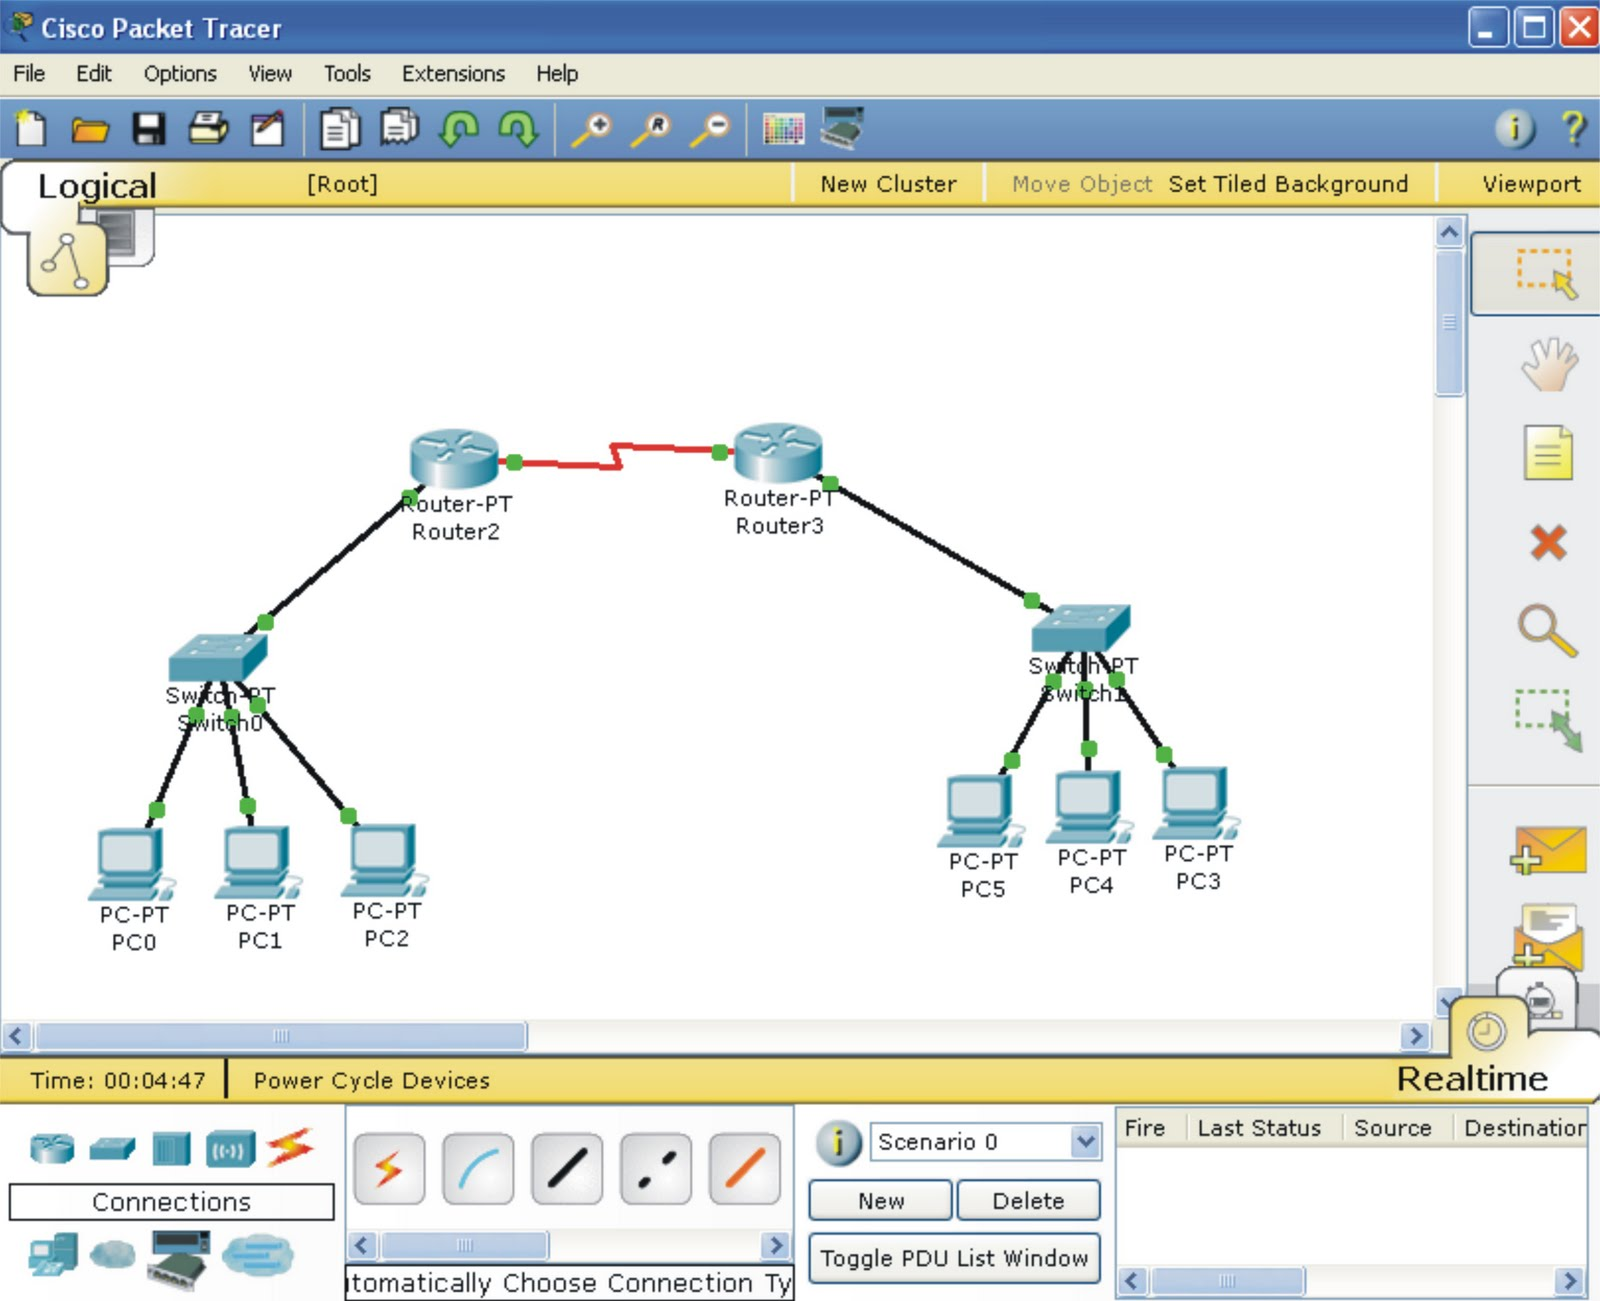 about cisco packet tracer